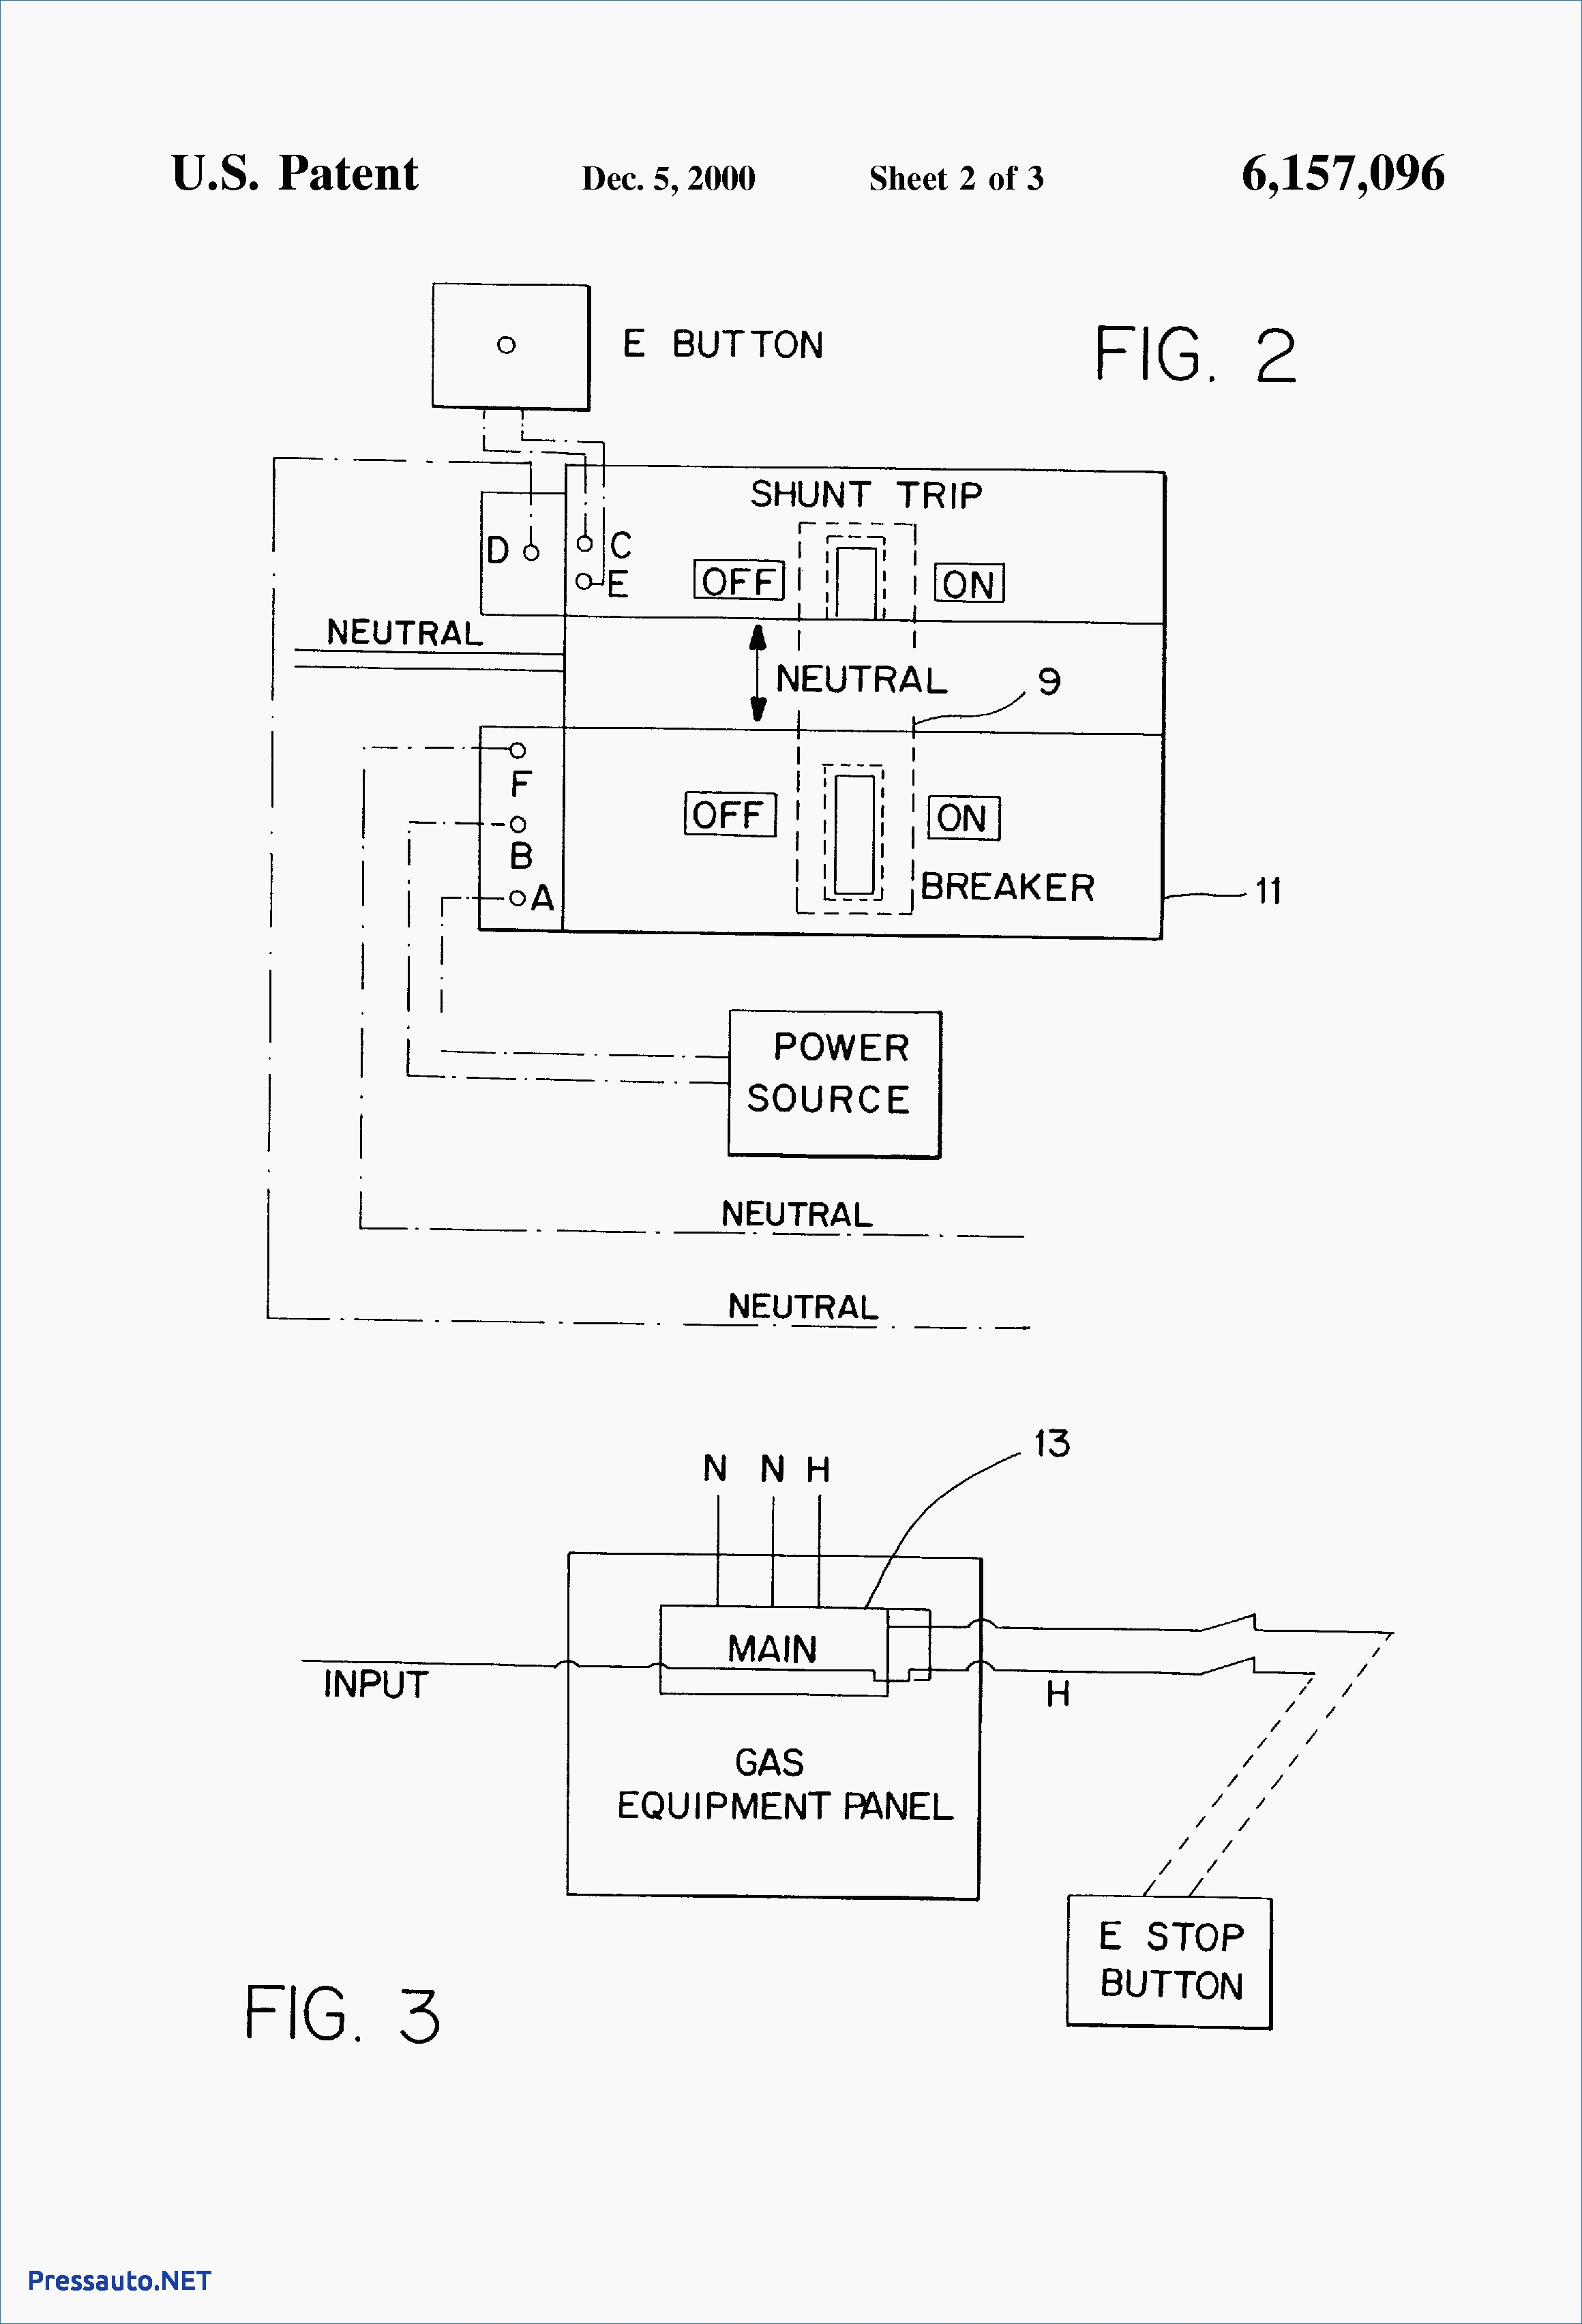 shunt trip breaker wiring diagram Download-Siemens Shunt Trip Breaker Wiring Diagram With Square D And Wirdig Ideas 3-c